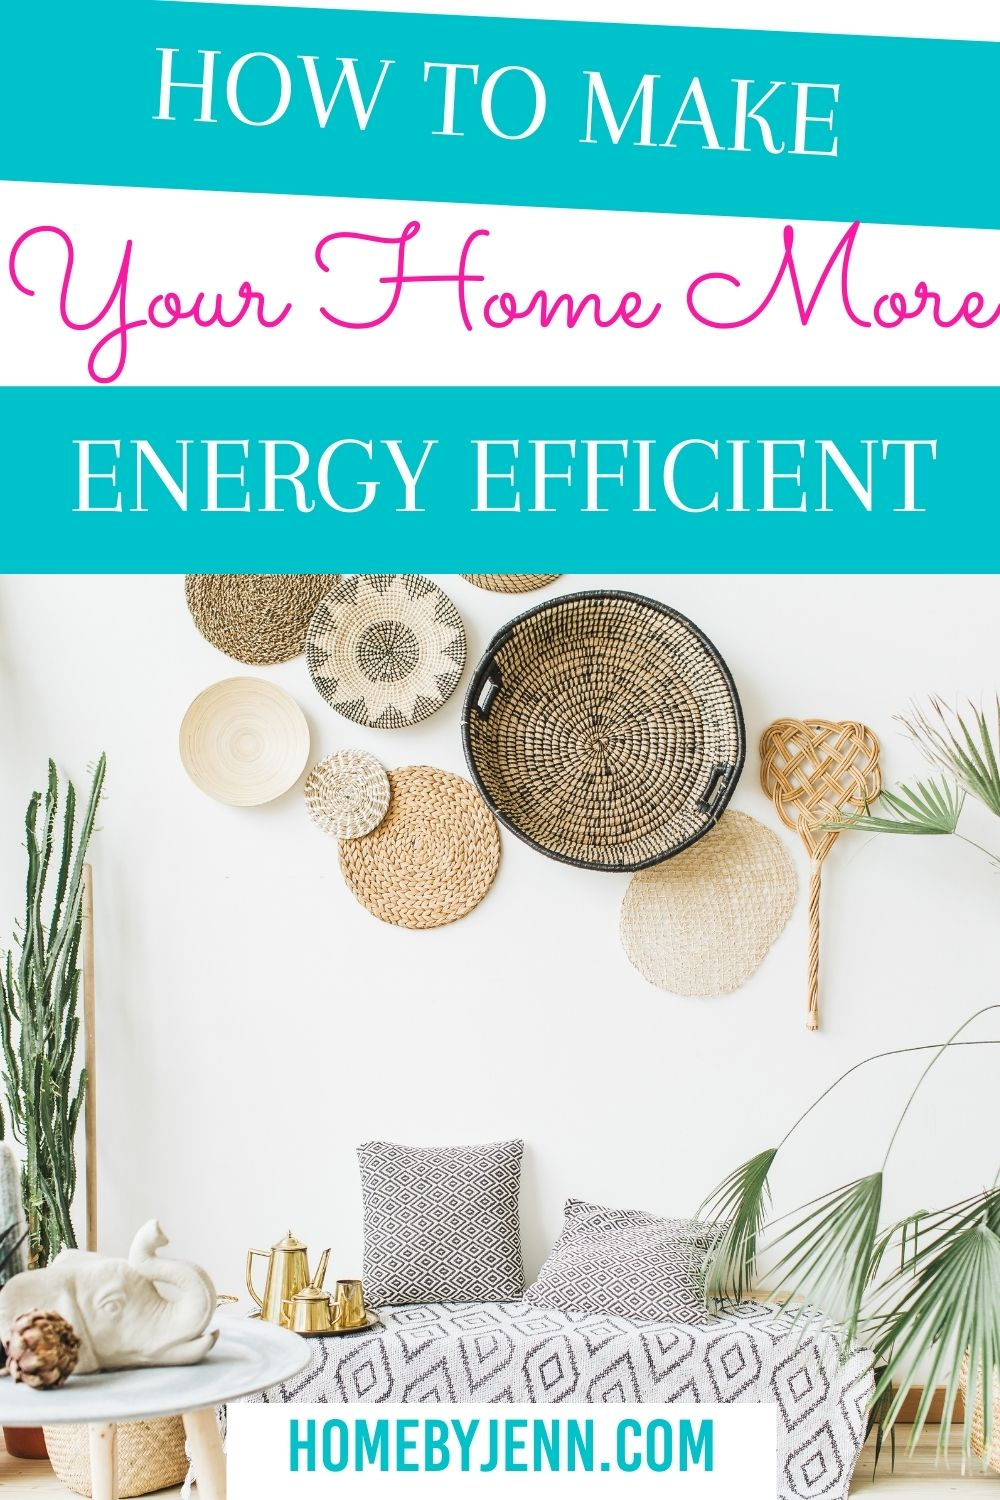 Learn how to make your home more energy efficient. There are simple things you can do to increase your home's efficiency that will also save you money. Let's look at some low-cost savings you can implement today. via @homebyjenn